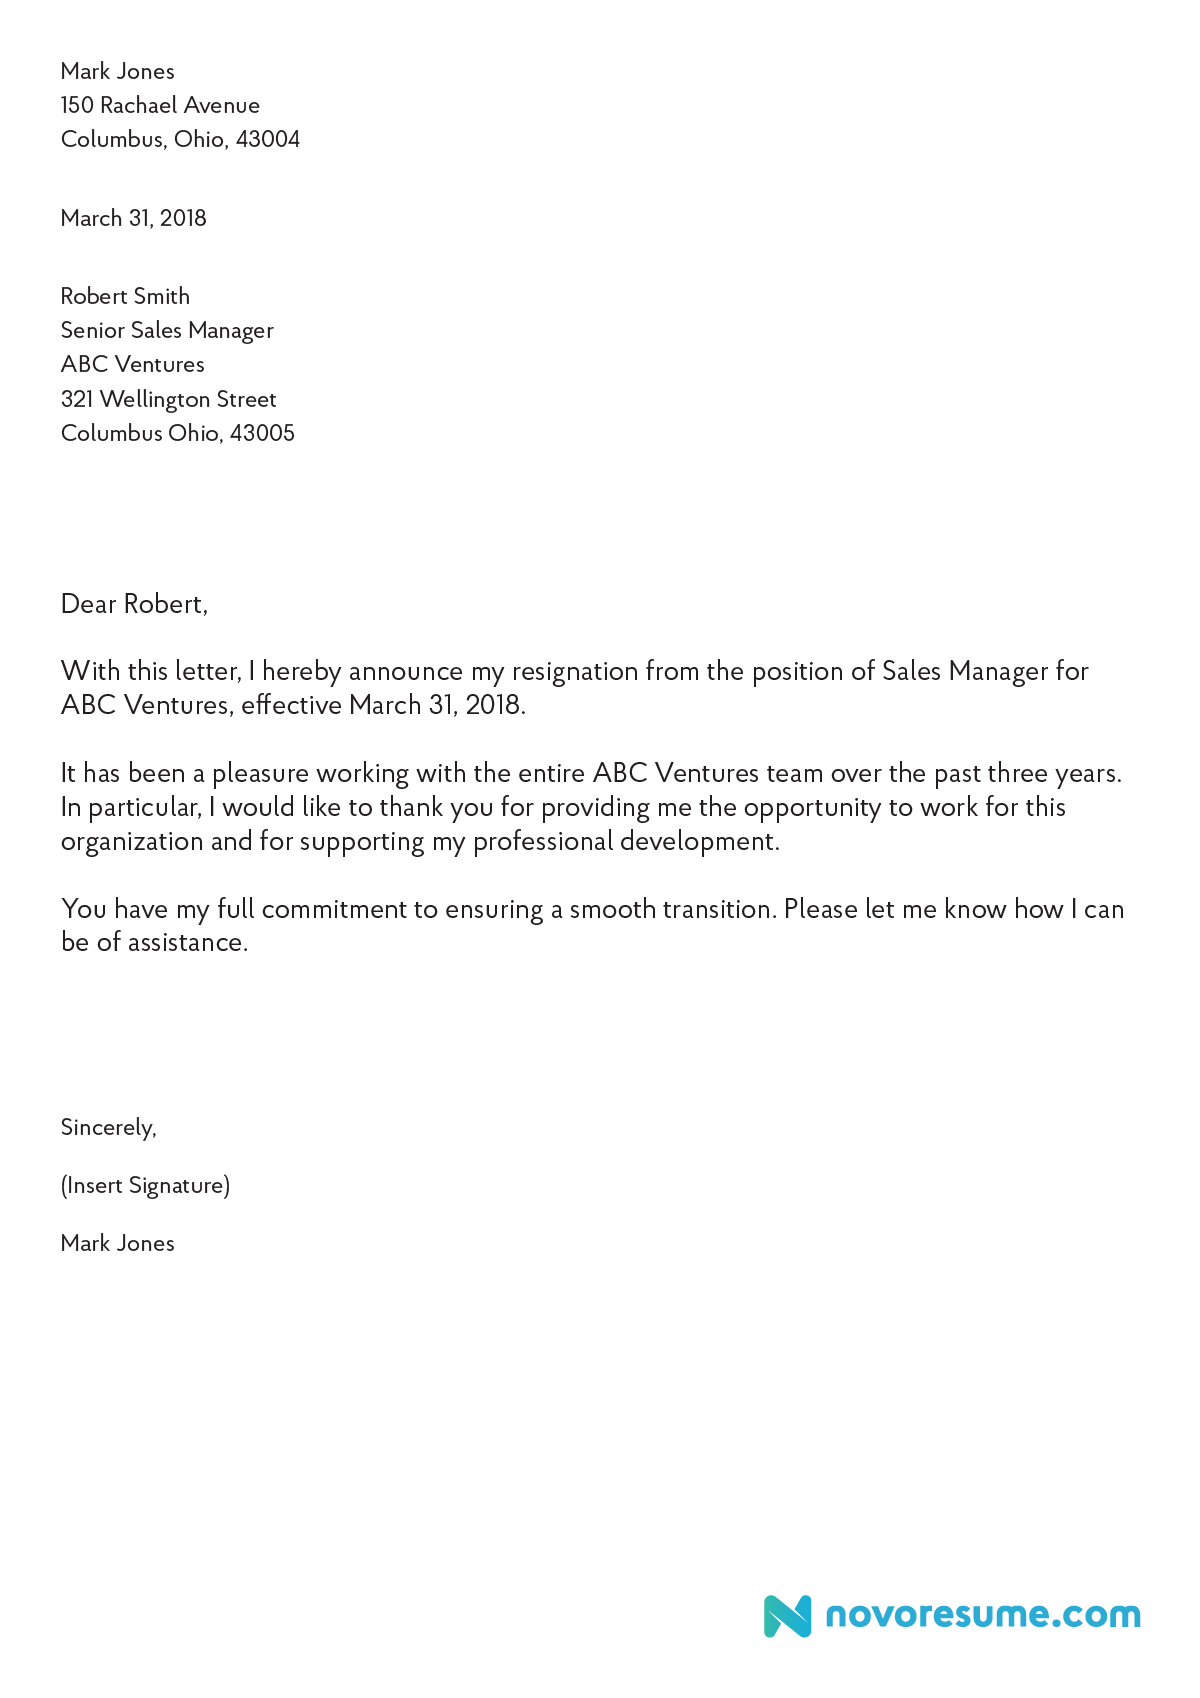 How to write a letter of resignation 2018 extensive guide resignation letter sample 2018 expocarfo Images